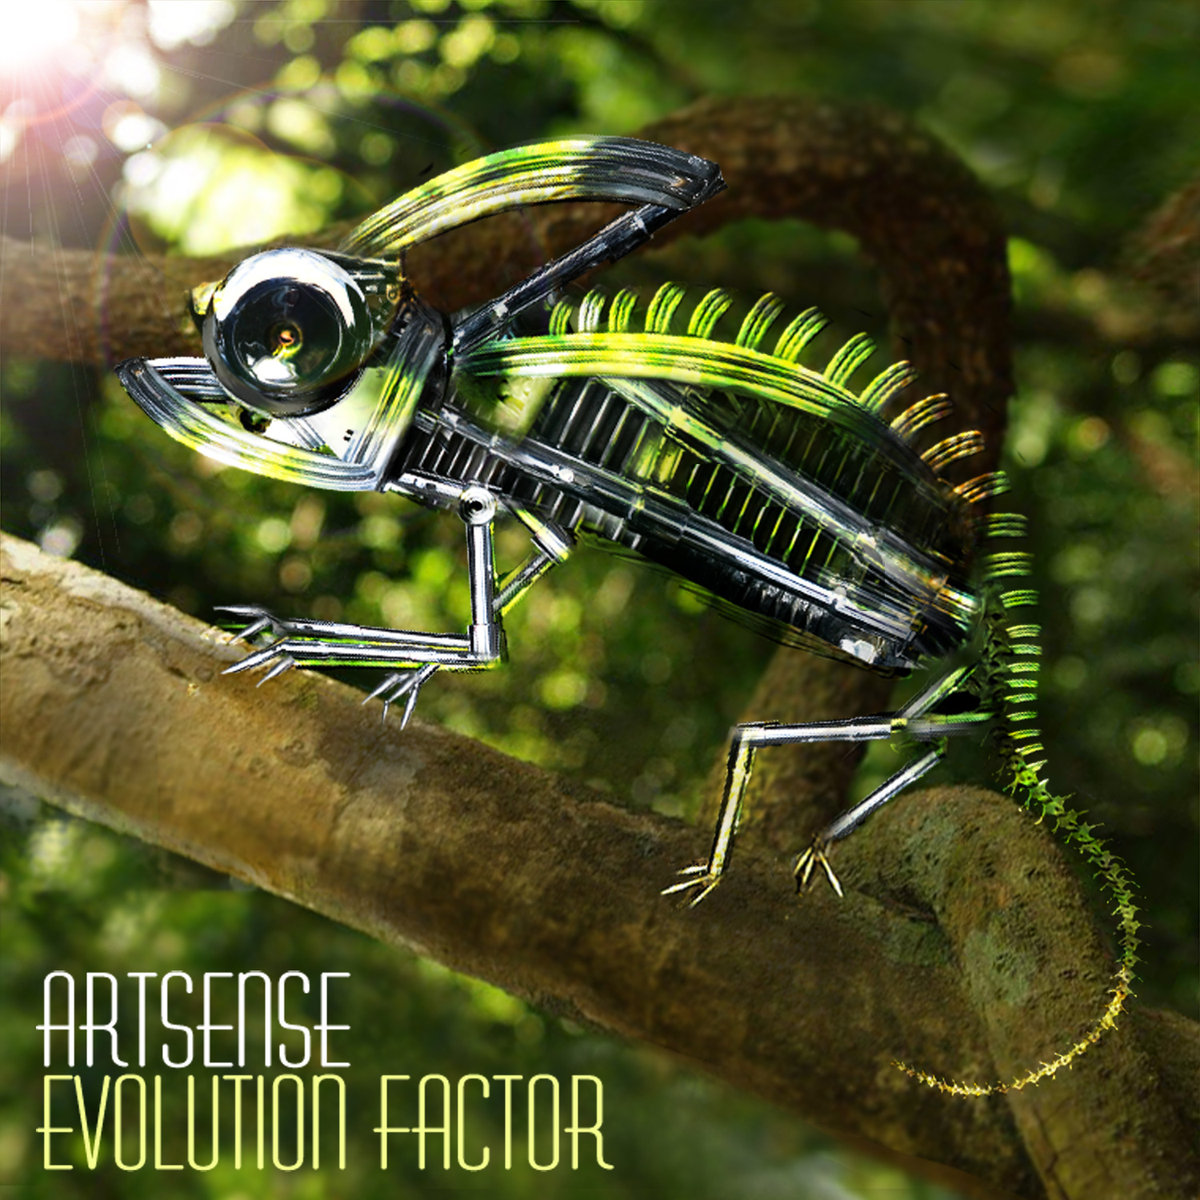 Artsense - Evolution Factor @ 'Evolution Factor' album (electronic, goa)